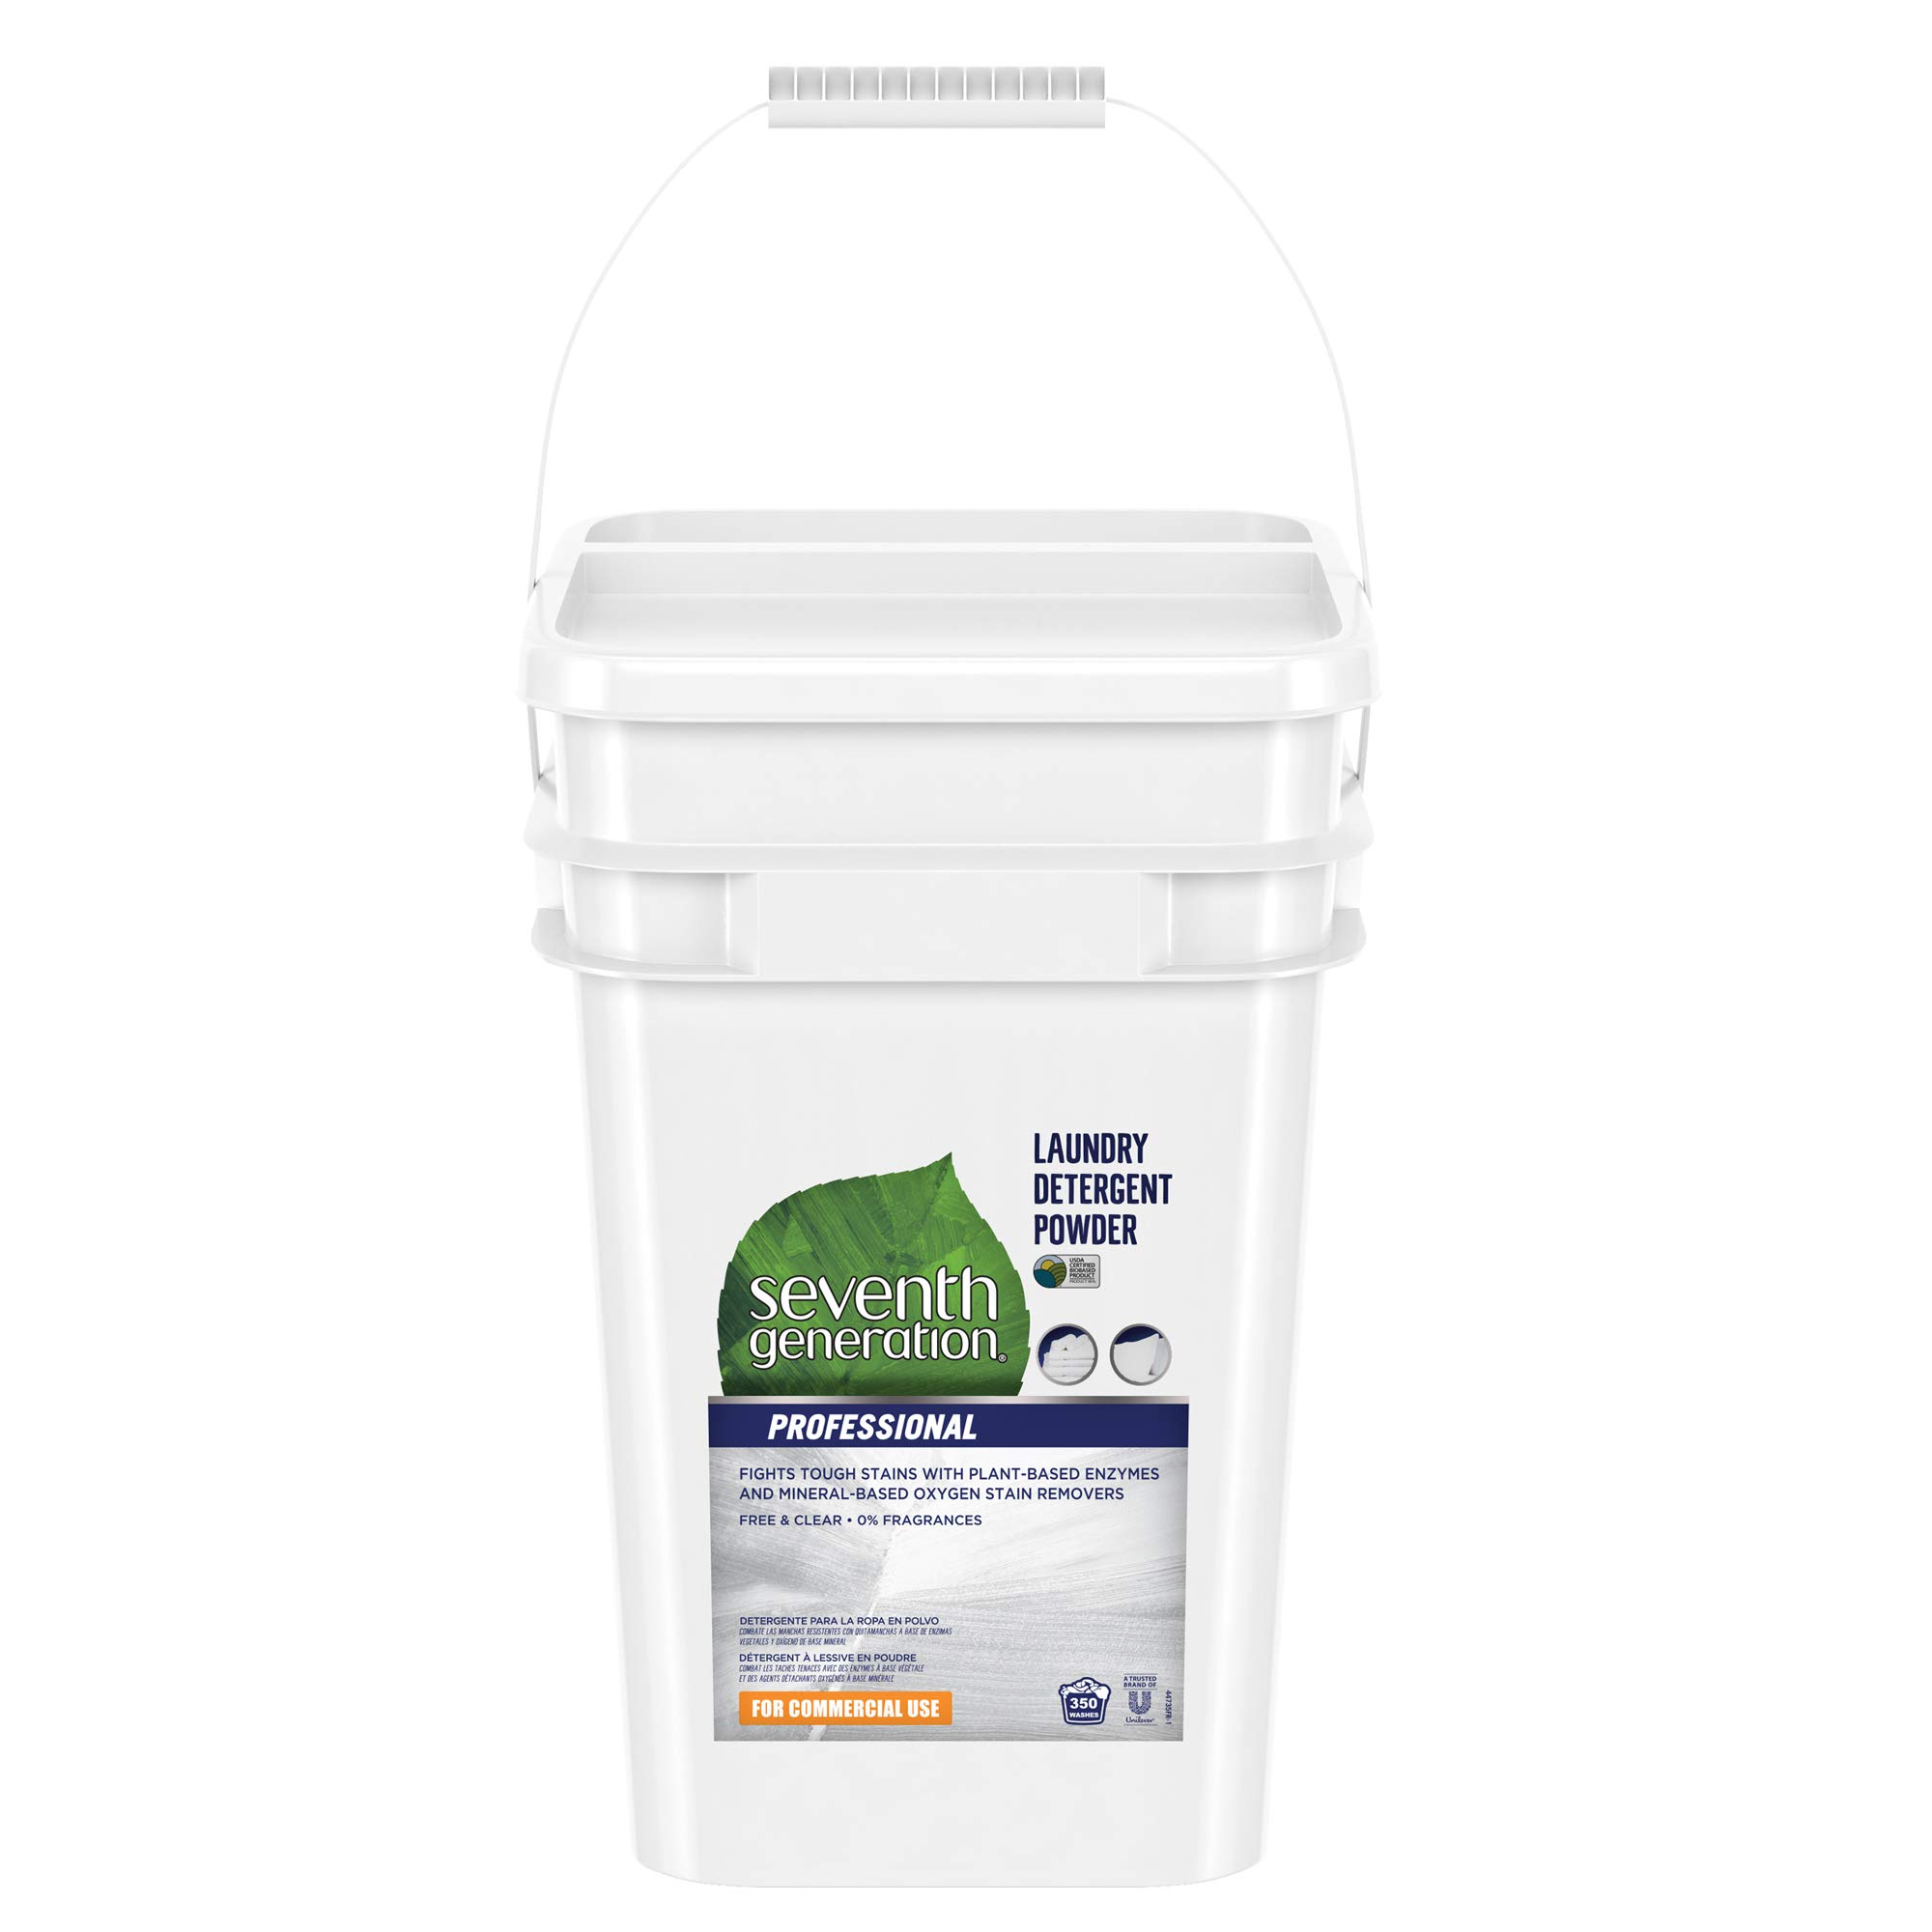 Seventh Generation Professional Laundry Detergent Powder, Unscented, 35 Pound by Seventh Generation Professional (Image #1)